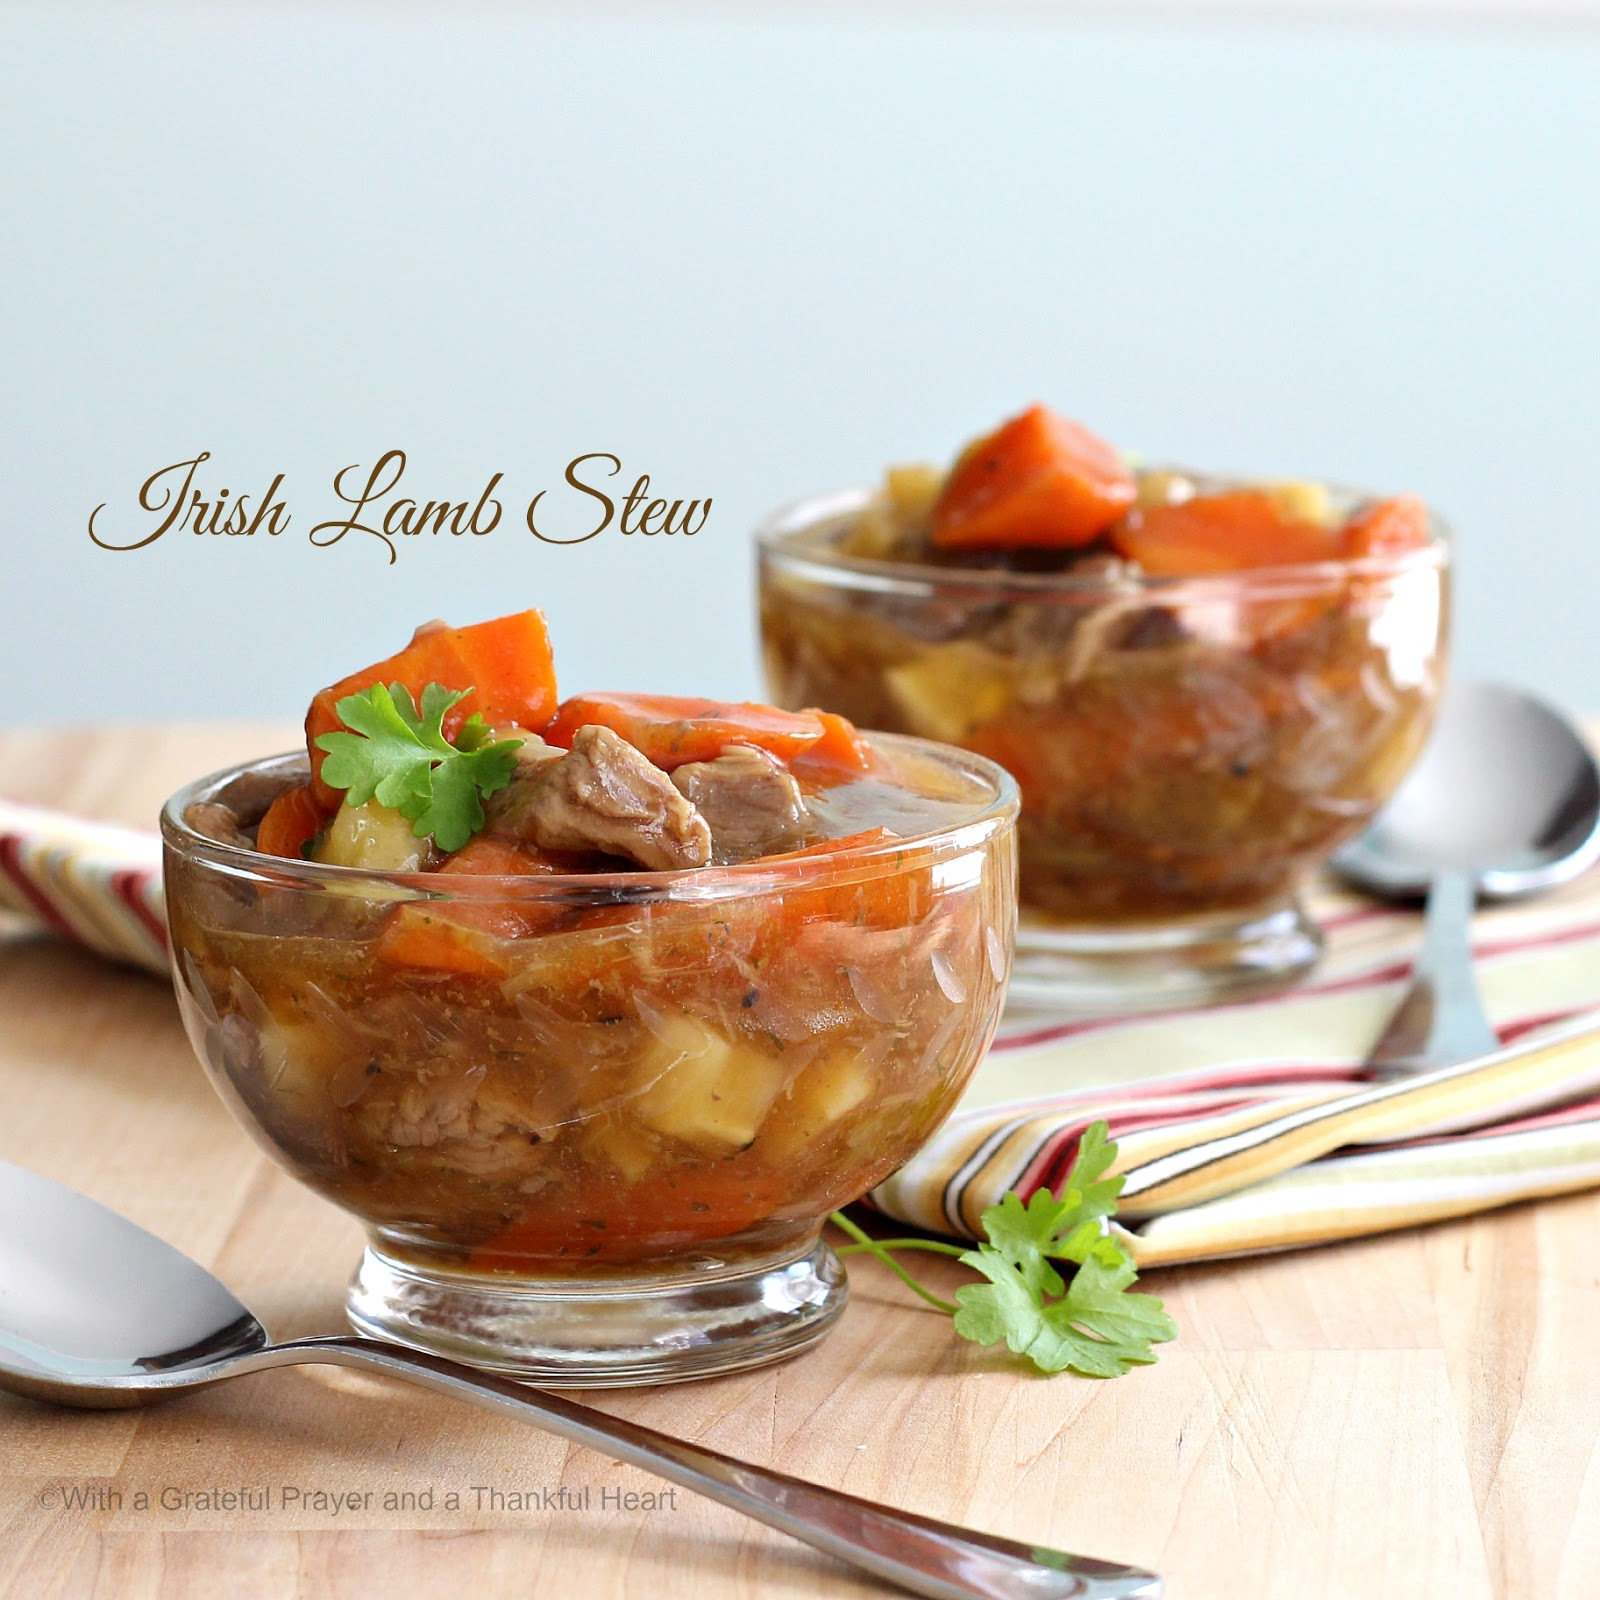 With a Grateful Prayer and a Thankful Heart: Irish Lamb Stew